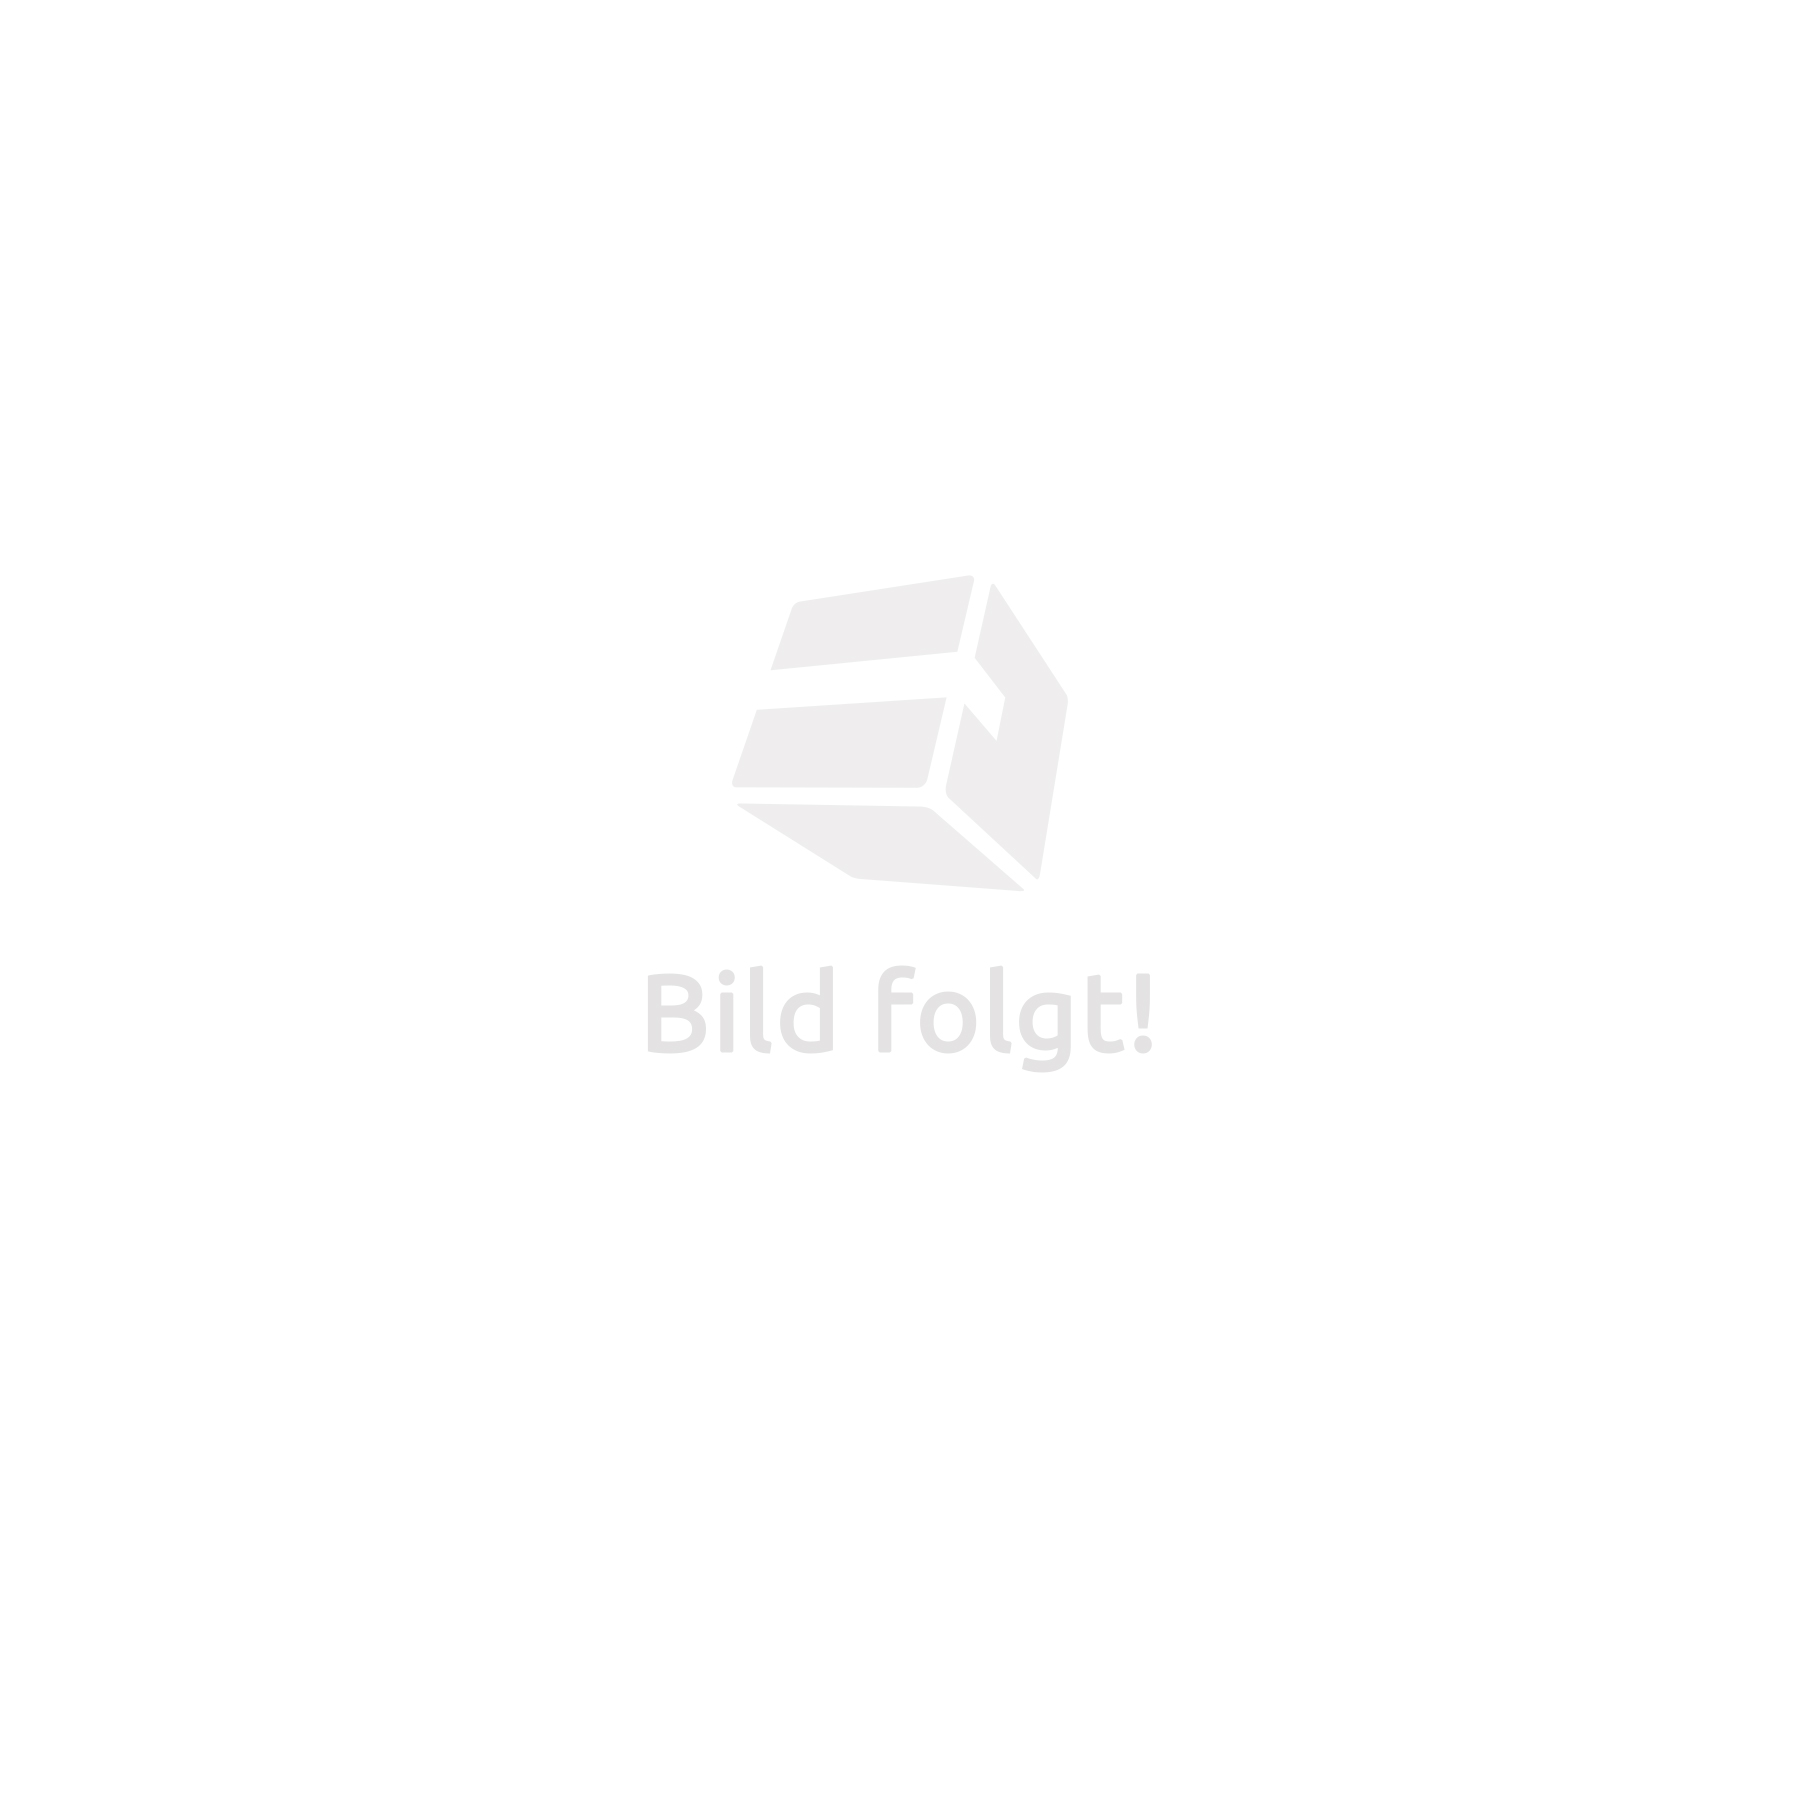 folding table with 4 stools camping set portable garden picnic outdoor bbq ebay. Black Bedroom Furniture Sets. Home Design Ideas